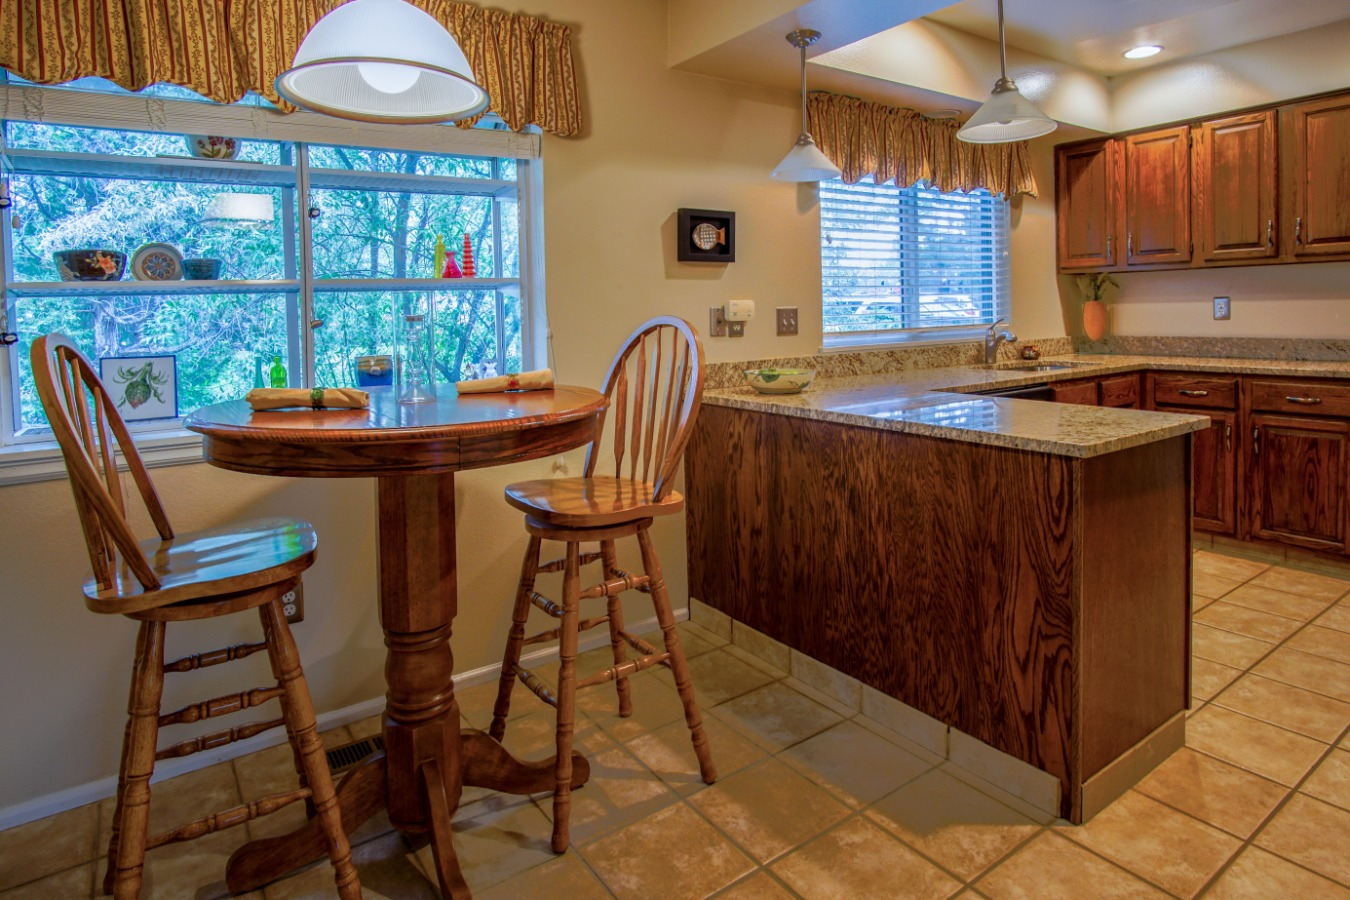 Lots of natural light in the kitchen